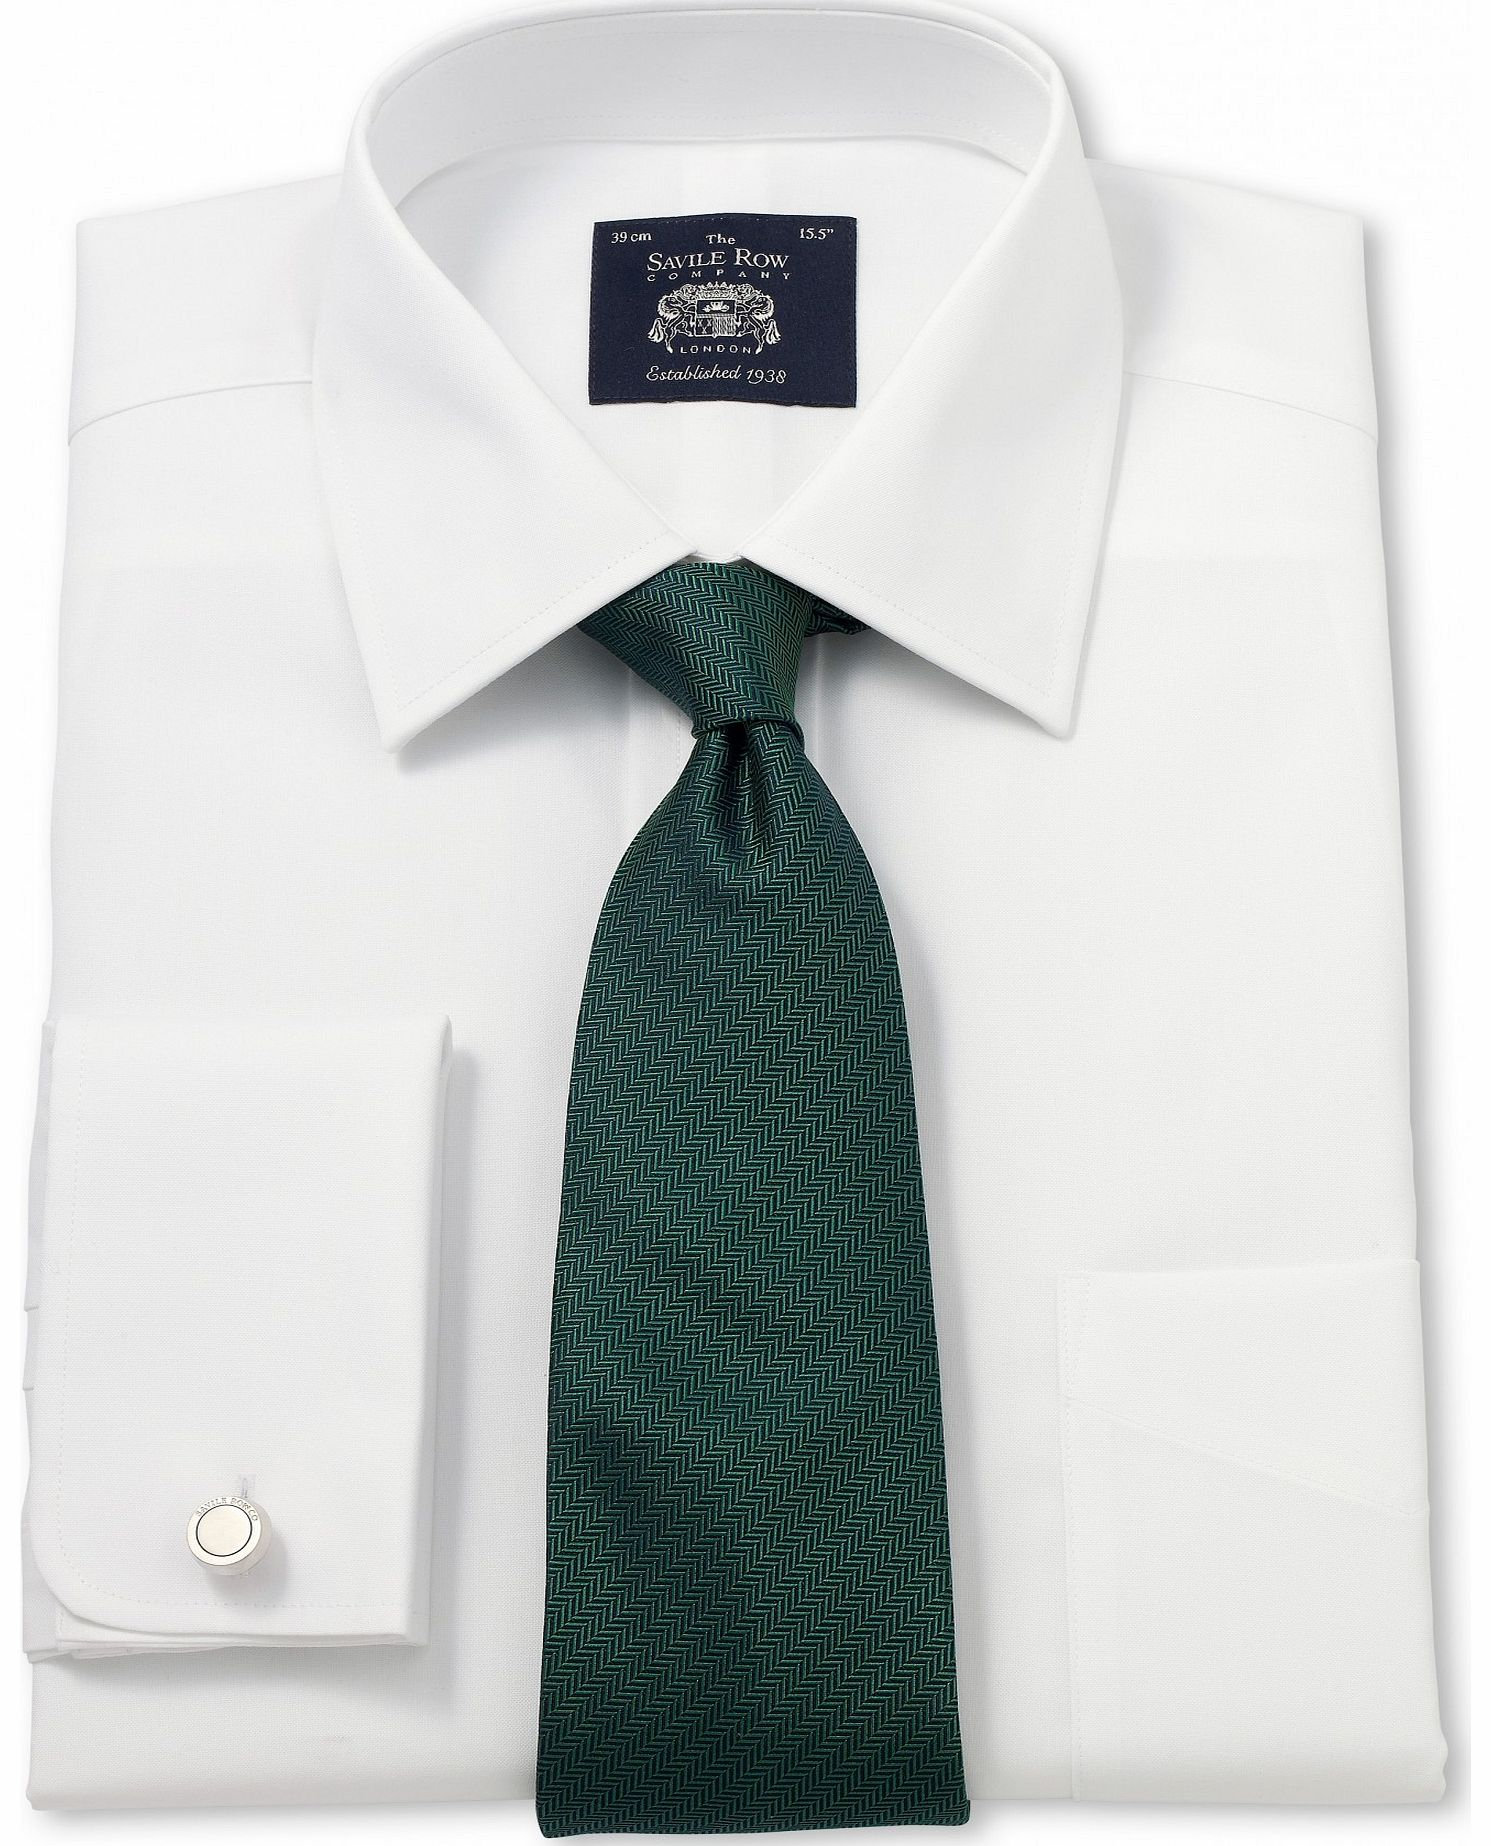 Savile Row Company White Non-Iron Classic Fit Shirt 15`` Single product image